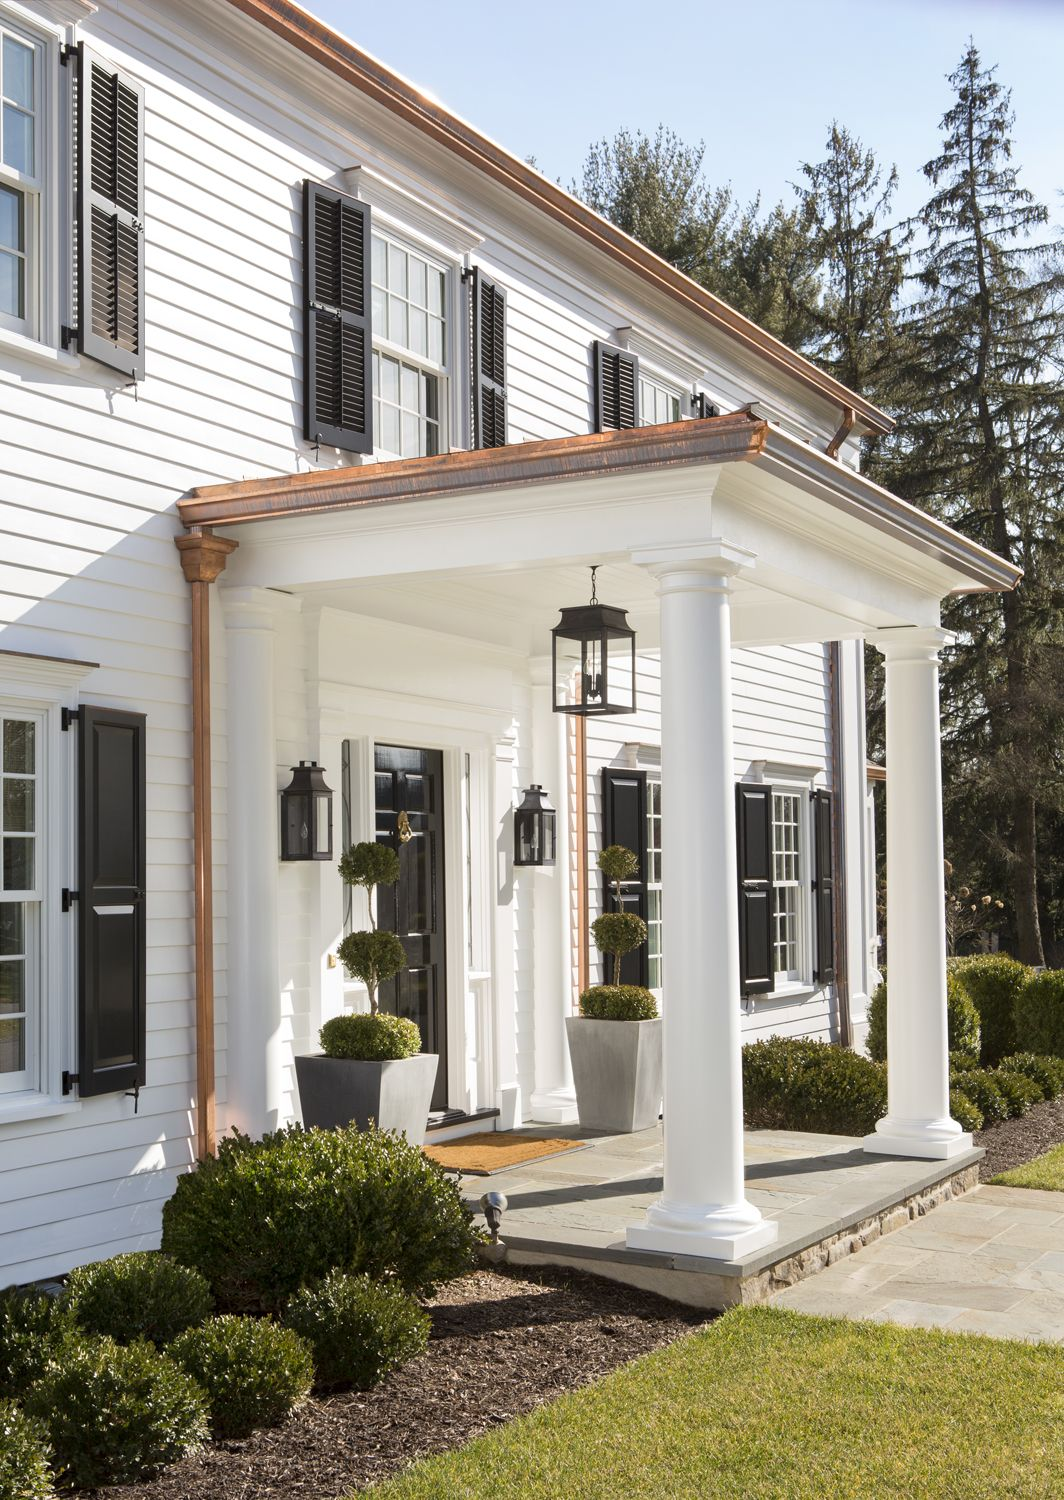 Exterior Renovation With Copper In 2020 Colonial House Exteriors Copper Roof House Cape House Exterior